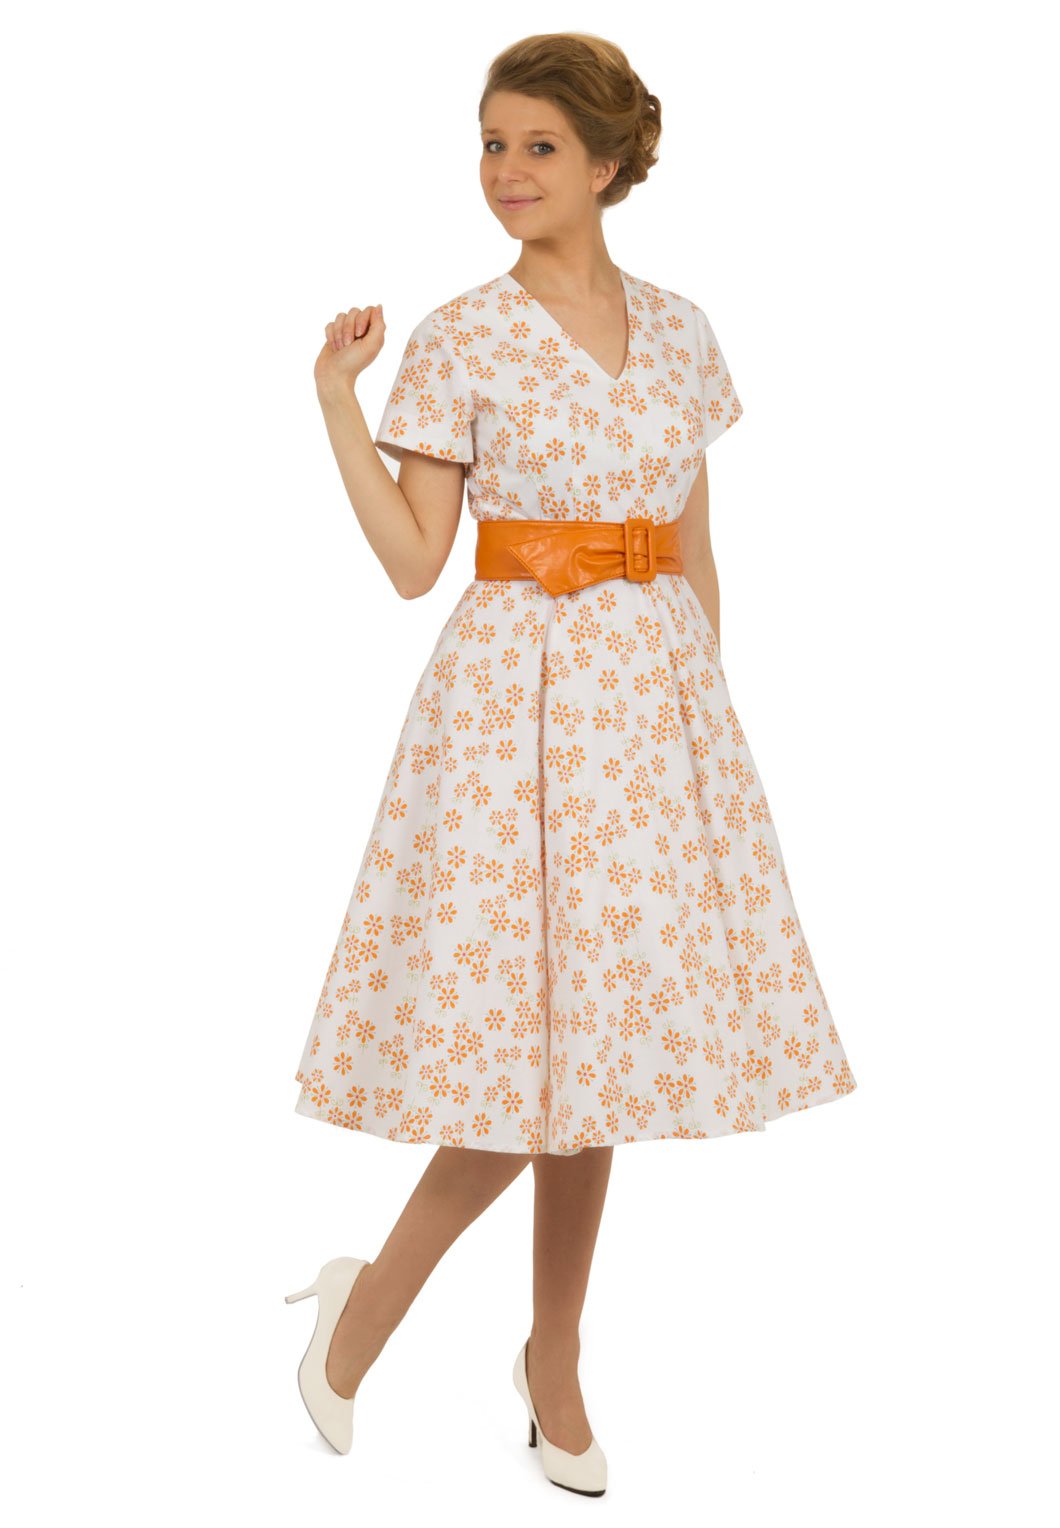 Lula Retro 1950's Dress